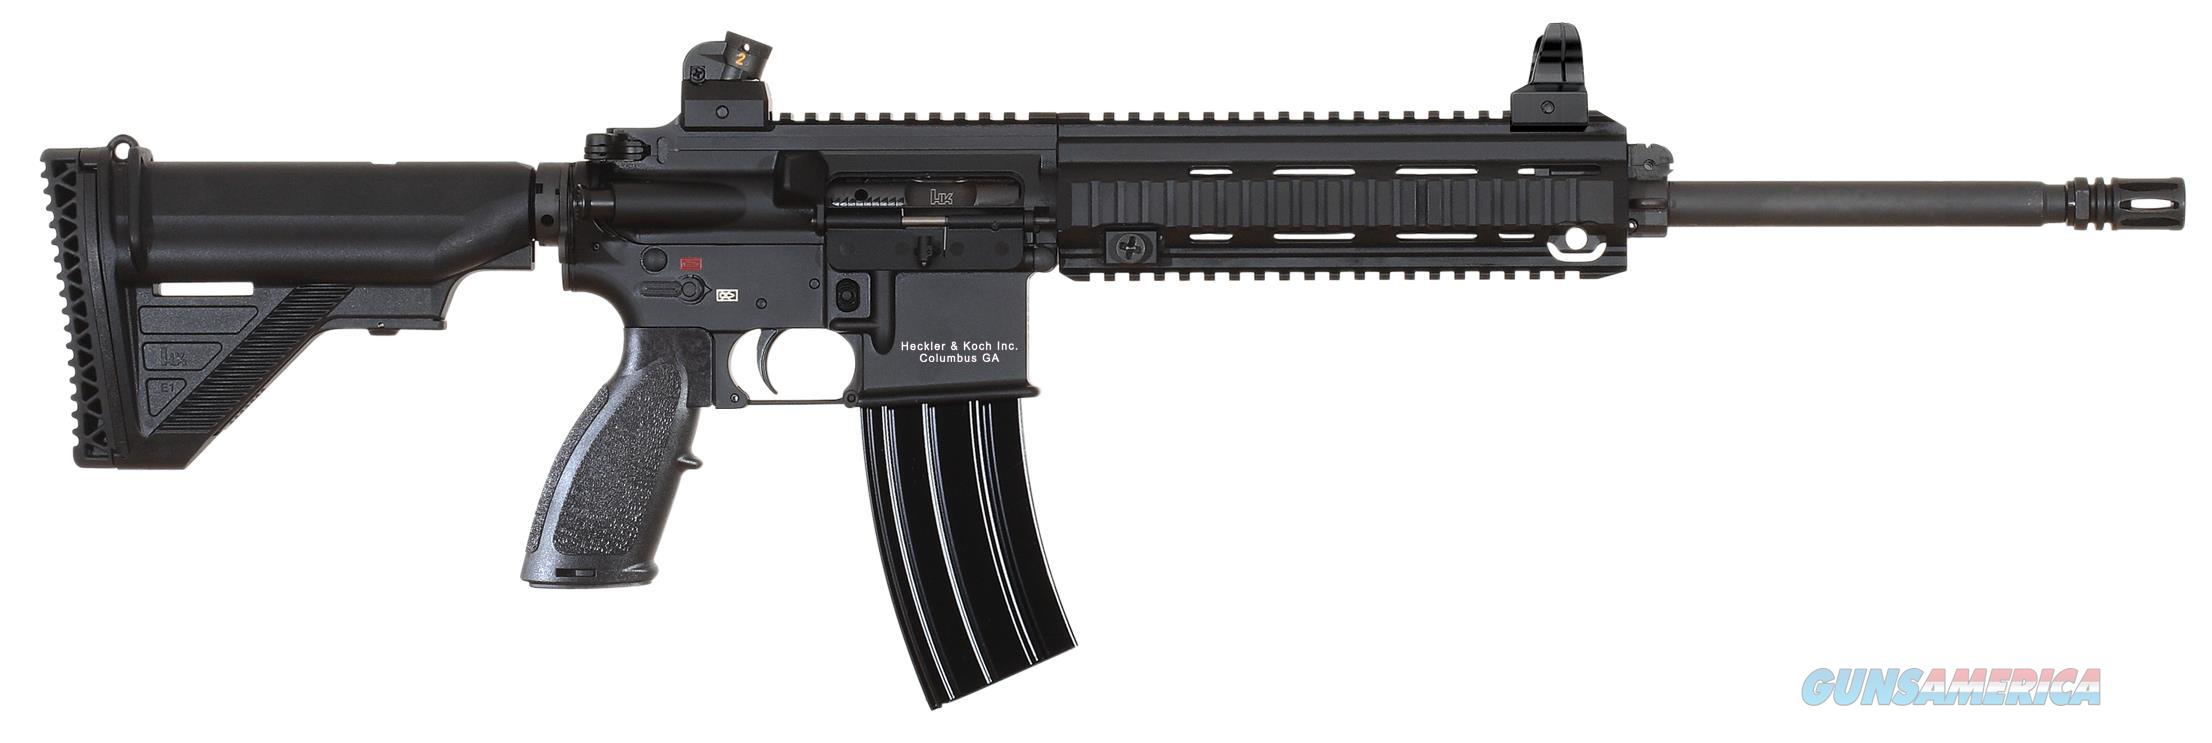 "HK MR556LCA1 MR556A1 MR556 SEMI-AUTOMATIC 223 REMINGTON/5.56 NATO 16.5"" 10+1 SYNTHETIC BLK STK MR556LCA1  Guns > Rifles > Heckler & Koch Rifles > Tactical"